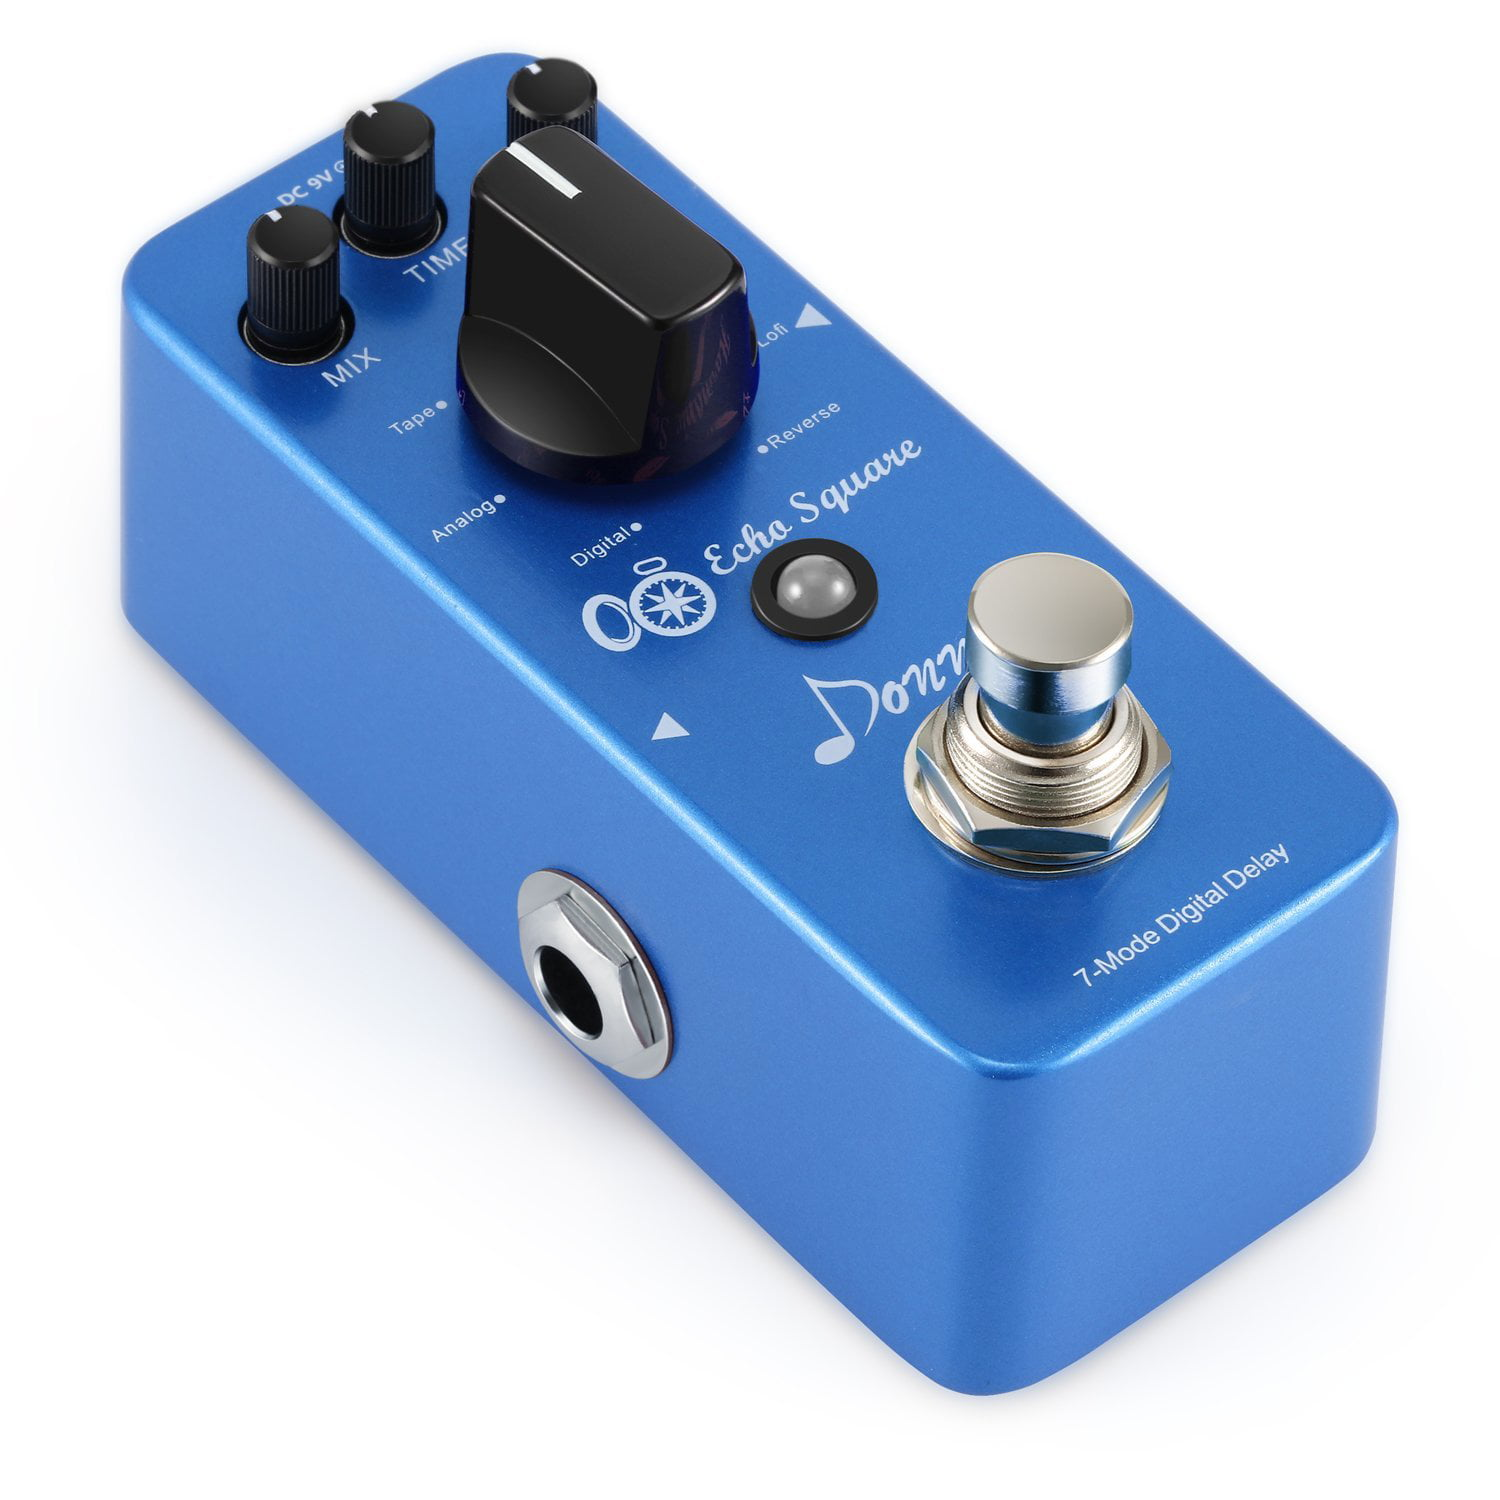 Donner Multi Digital Delay Pedal Echo Square Guitar Effect Pedal 7 Modes by